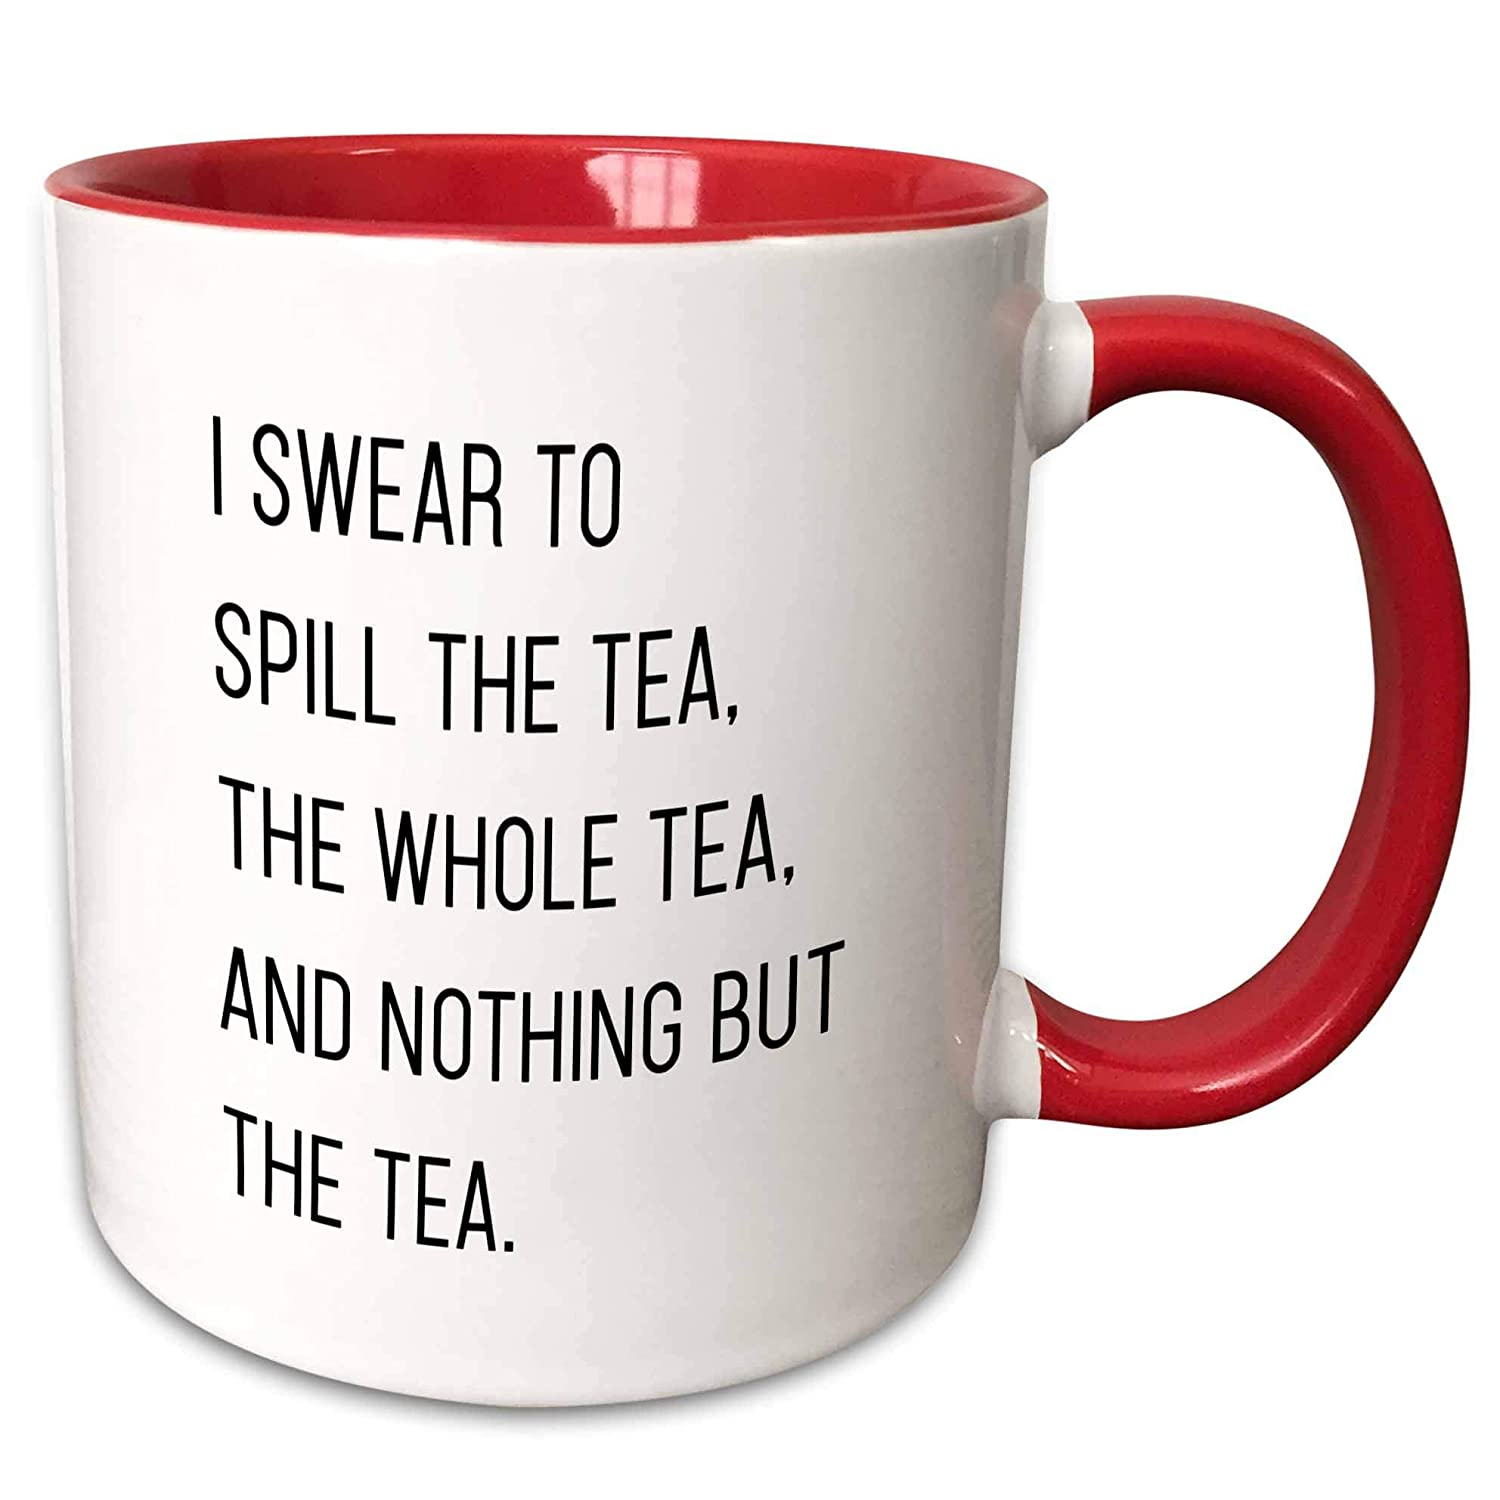 11oz Mug mug/_292551/_1 3dRose Tory Anne Collections Quotes I Swear To Spill The Tea The Whole Tea And Nothing But The Tea Funny Quote